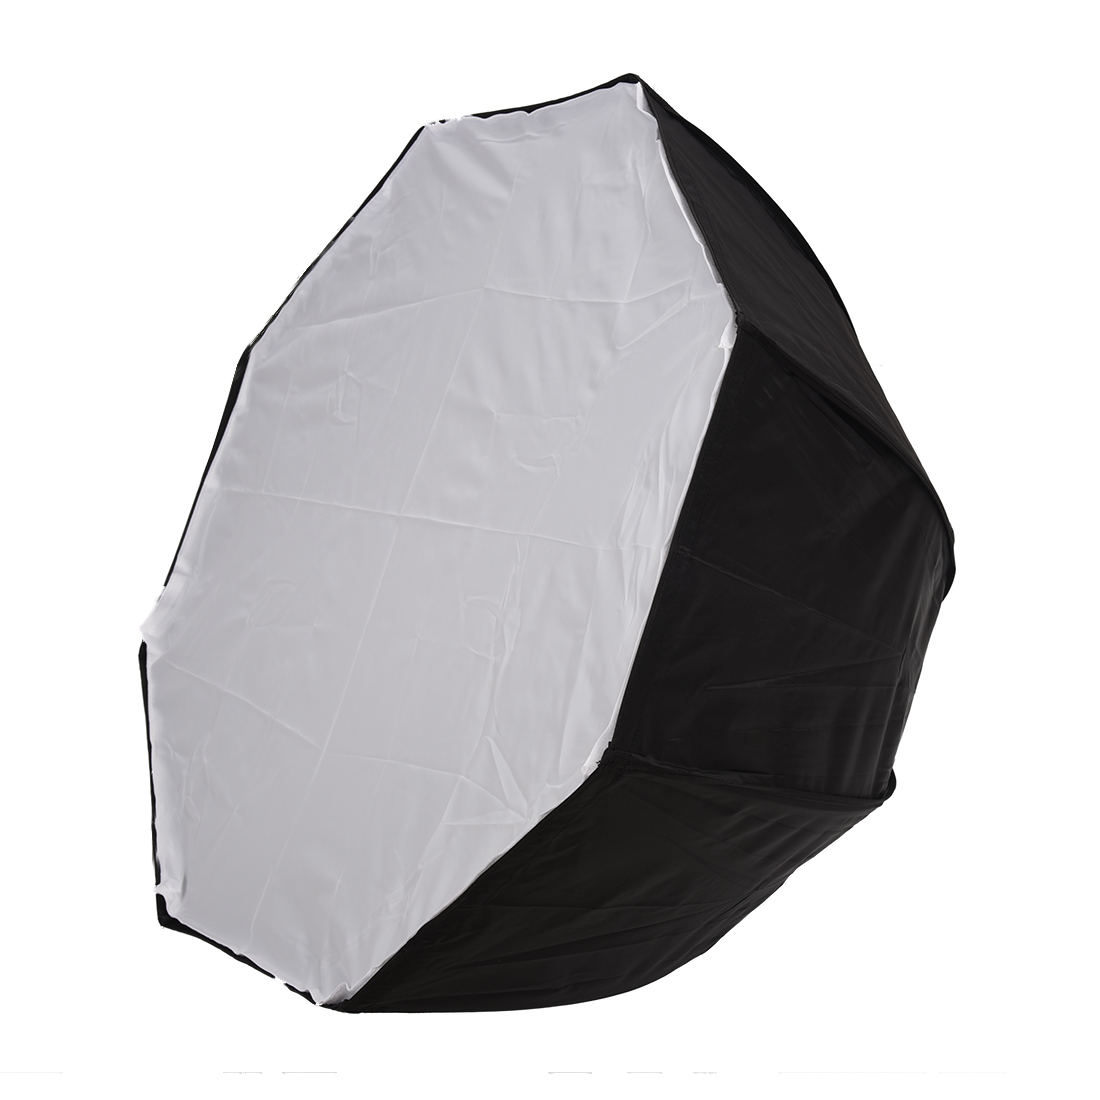 80cm / 31.5in Octagon Umbrella Softbox Reflector Diffuser With Carbon Fiber Bracket For Speedlite Flash Light Silver Black